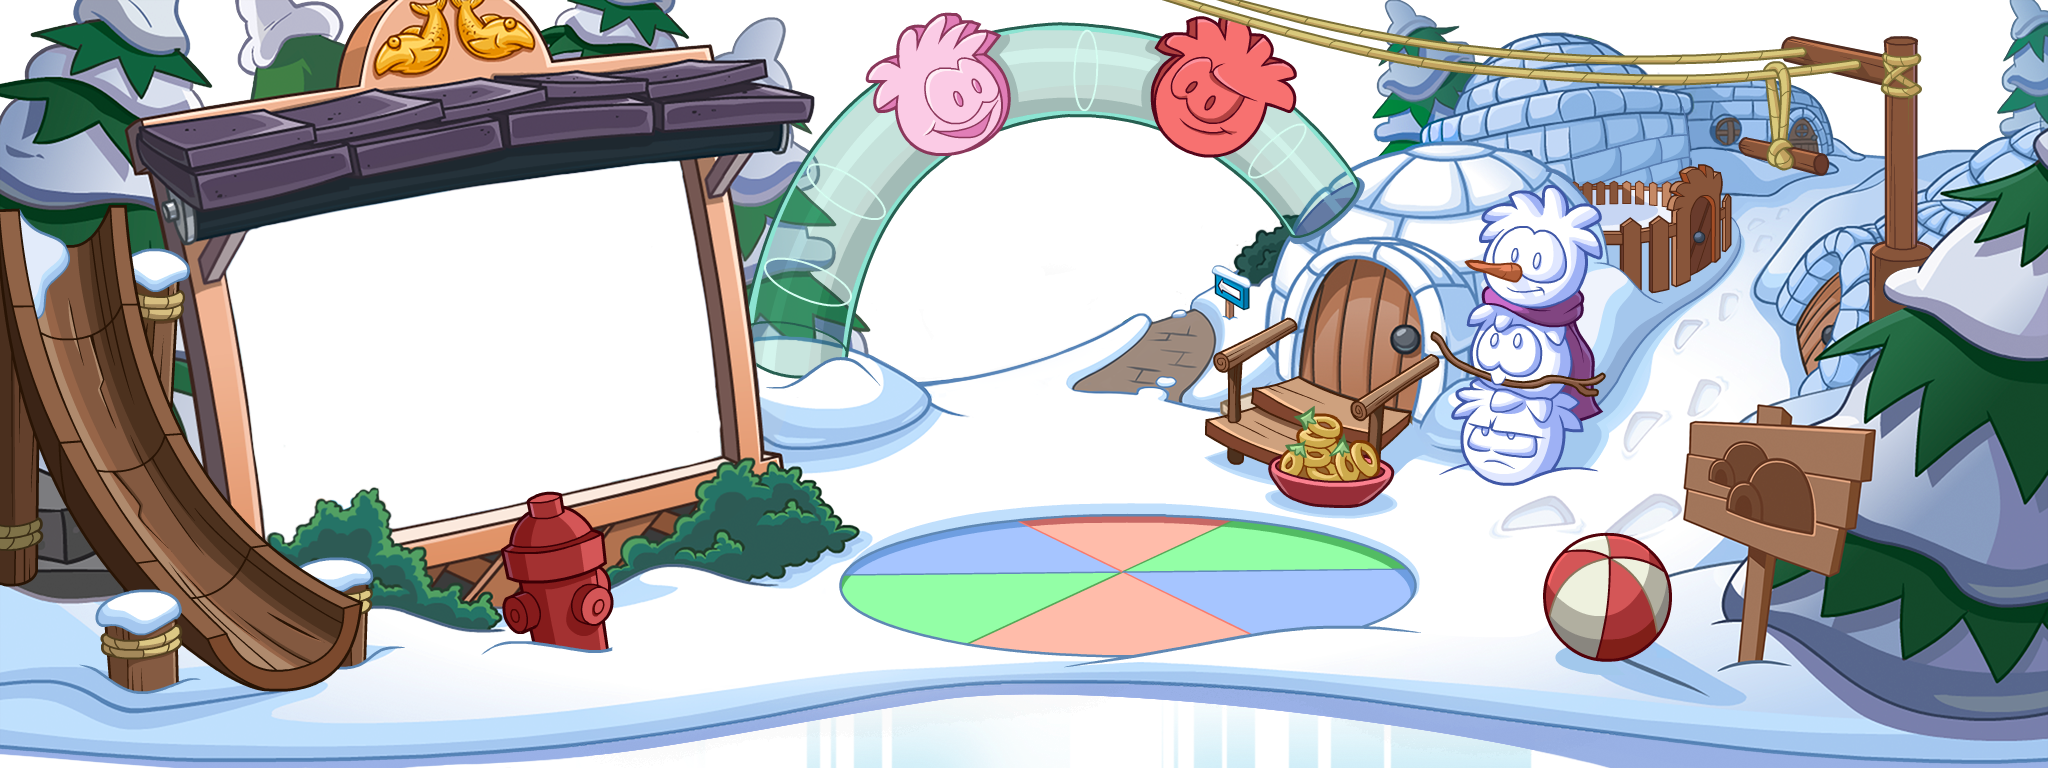 puffle homepage design in club penguin app club penguin island i like it when club penguin adds these decorations to their app